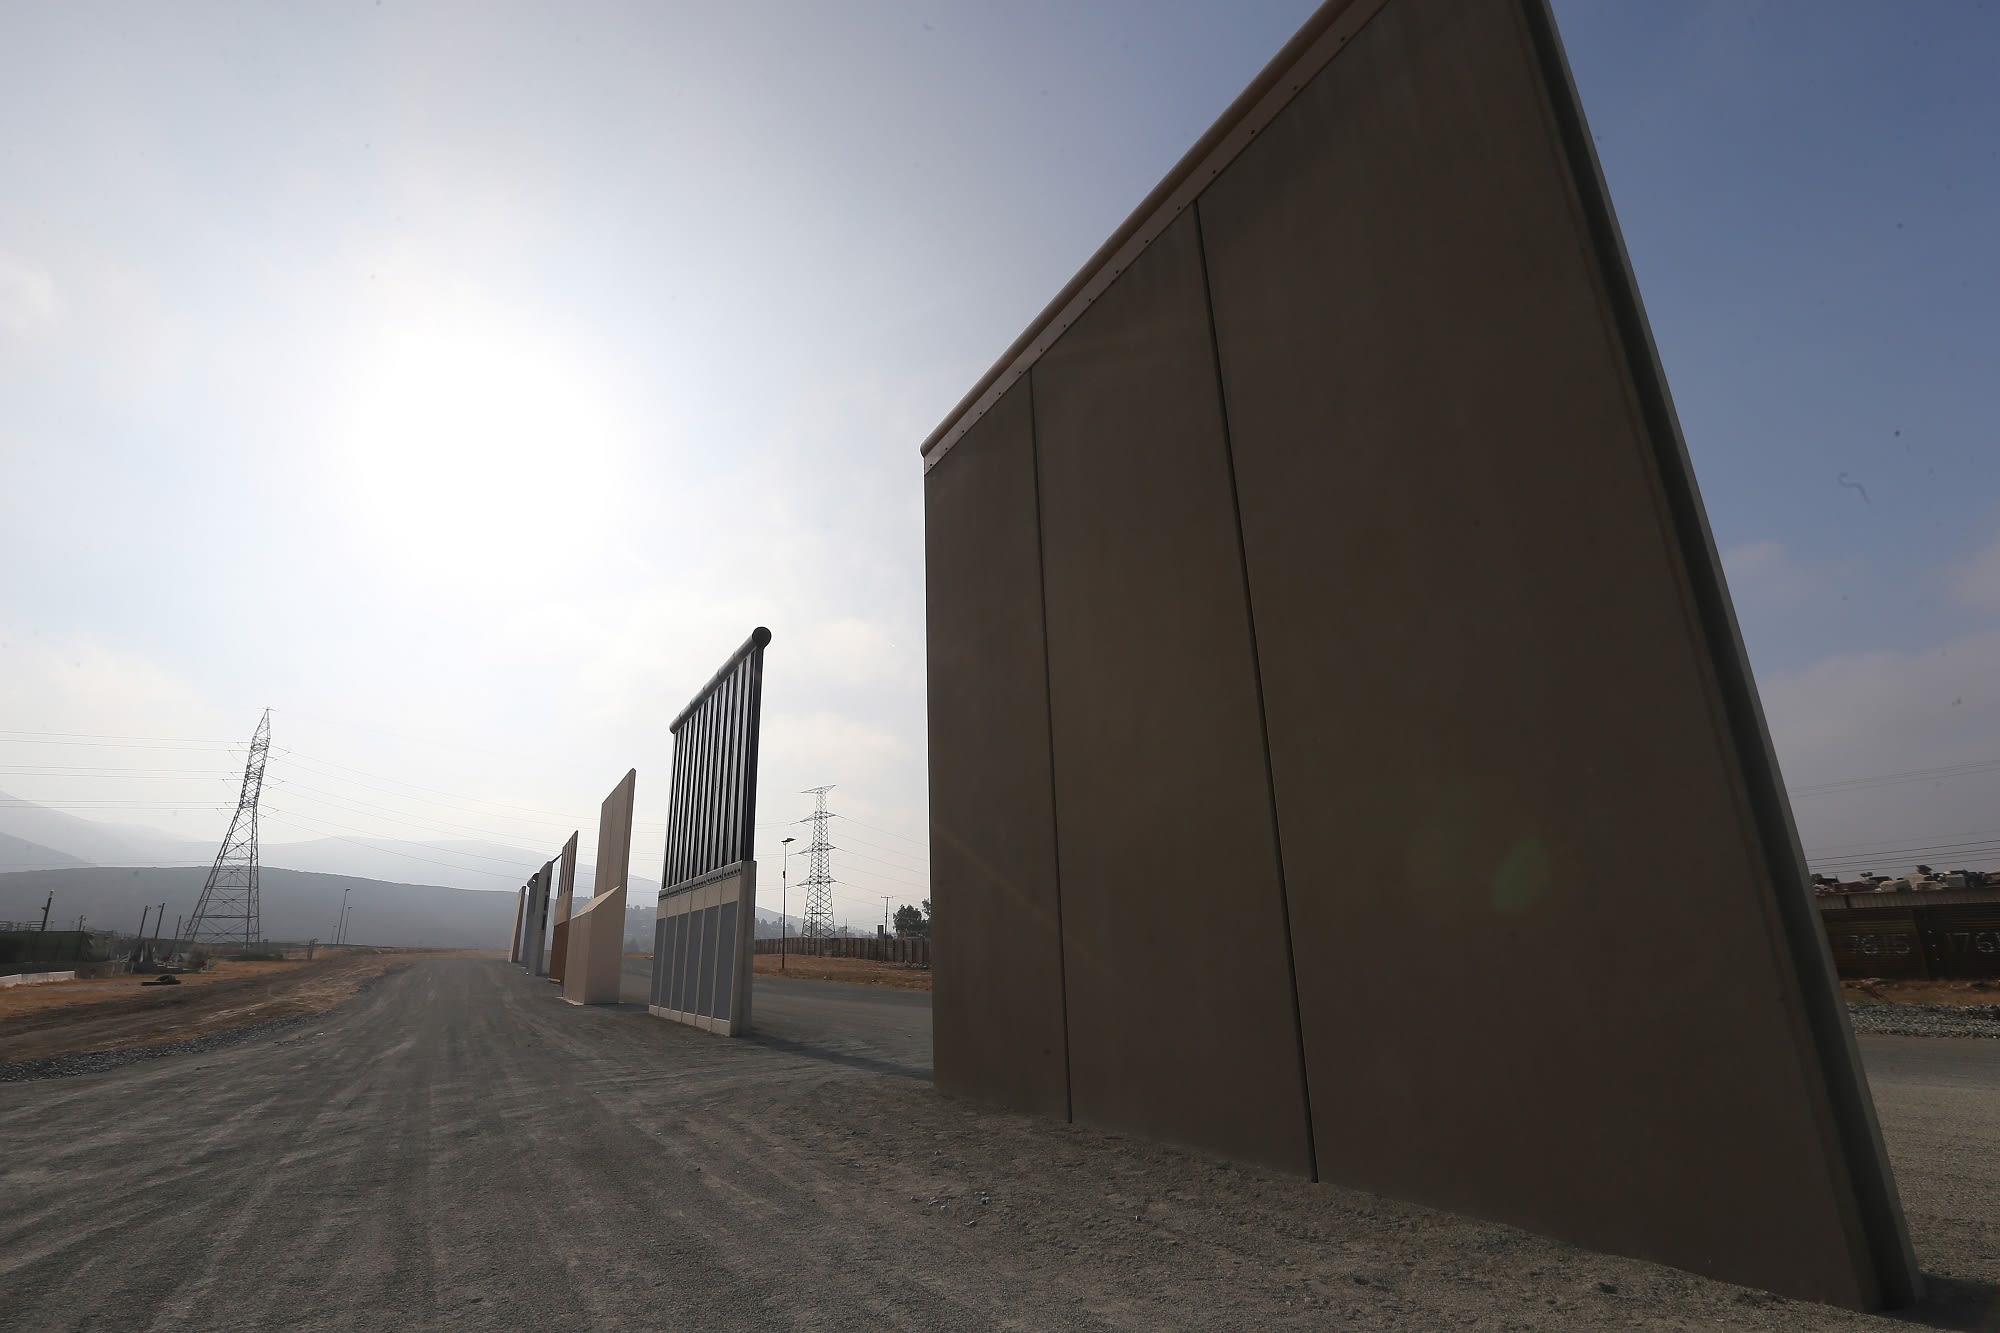 A GoFundMe campaign raised $20 million for a border wall—now all of the funds will be returned